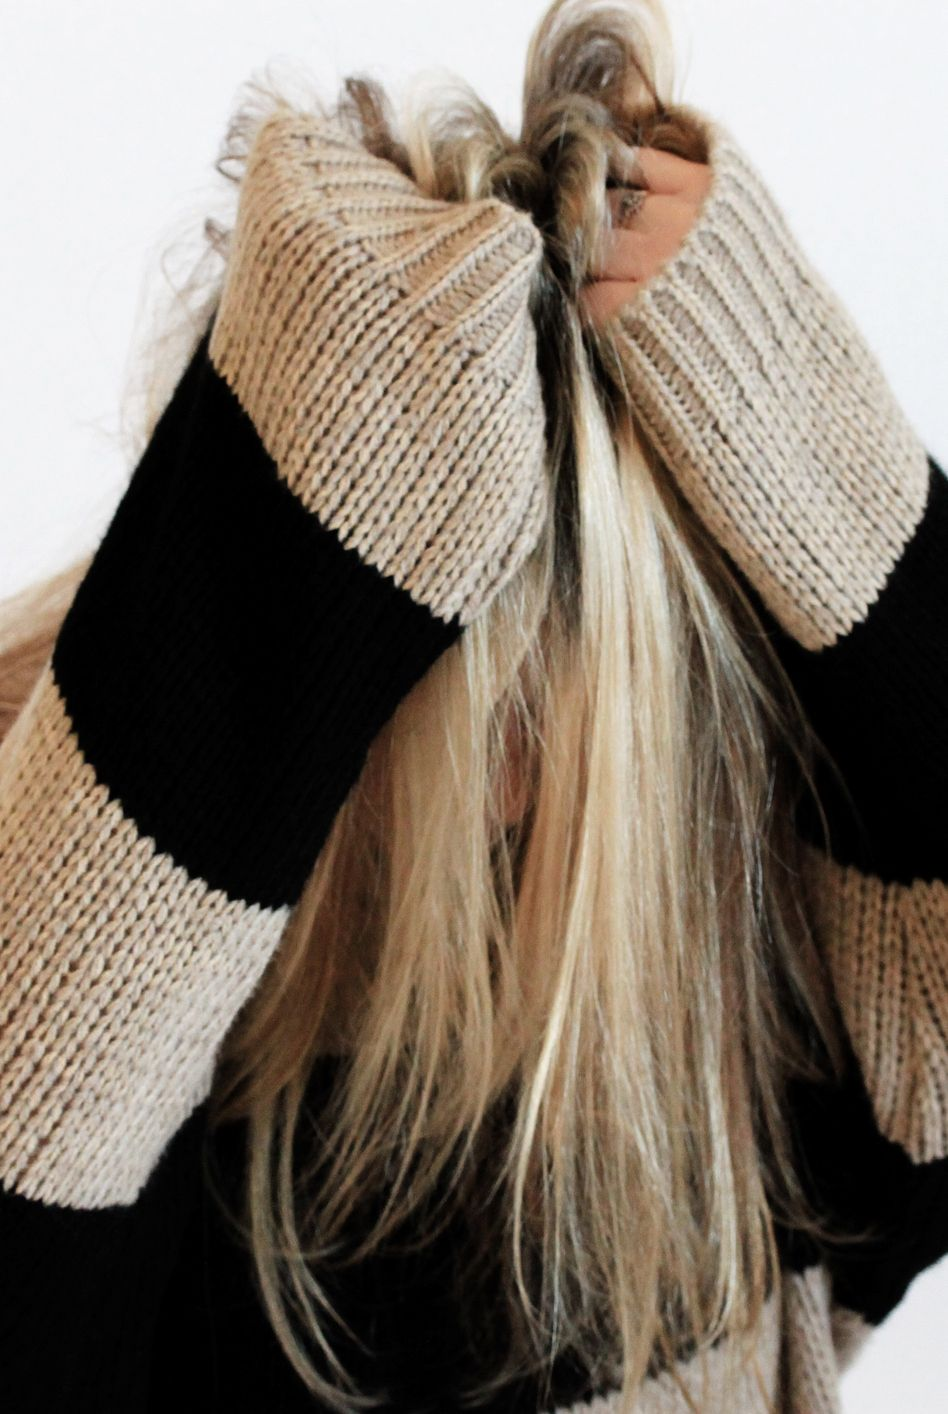 stress causes hair loss in women